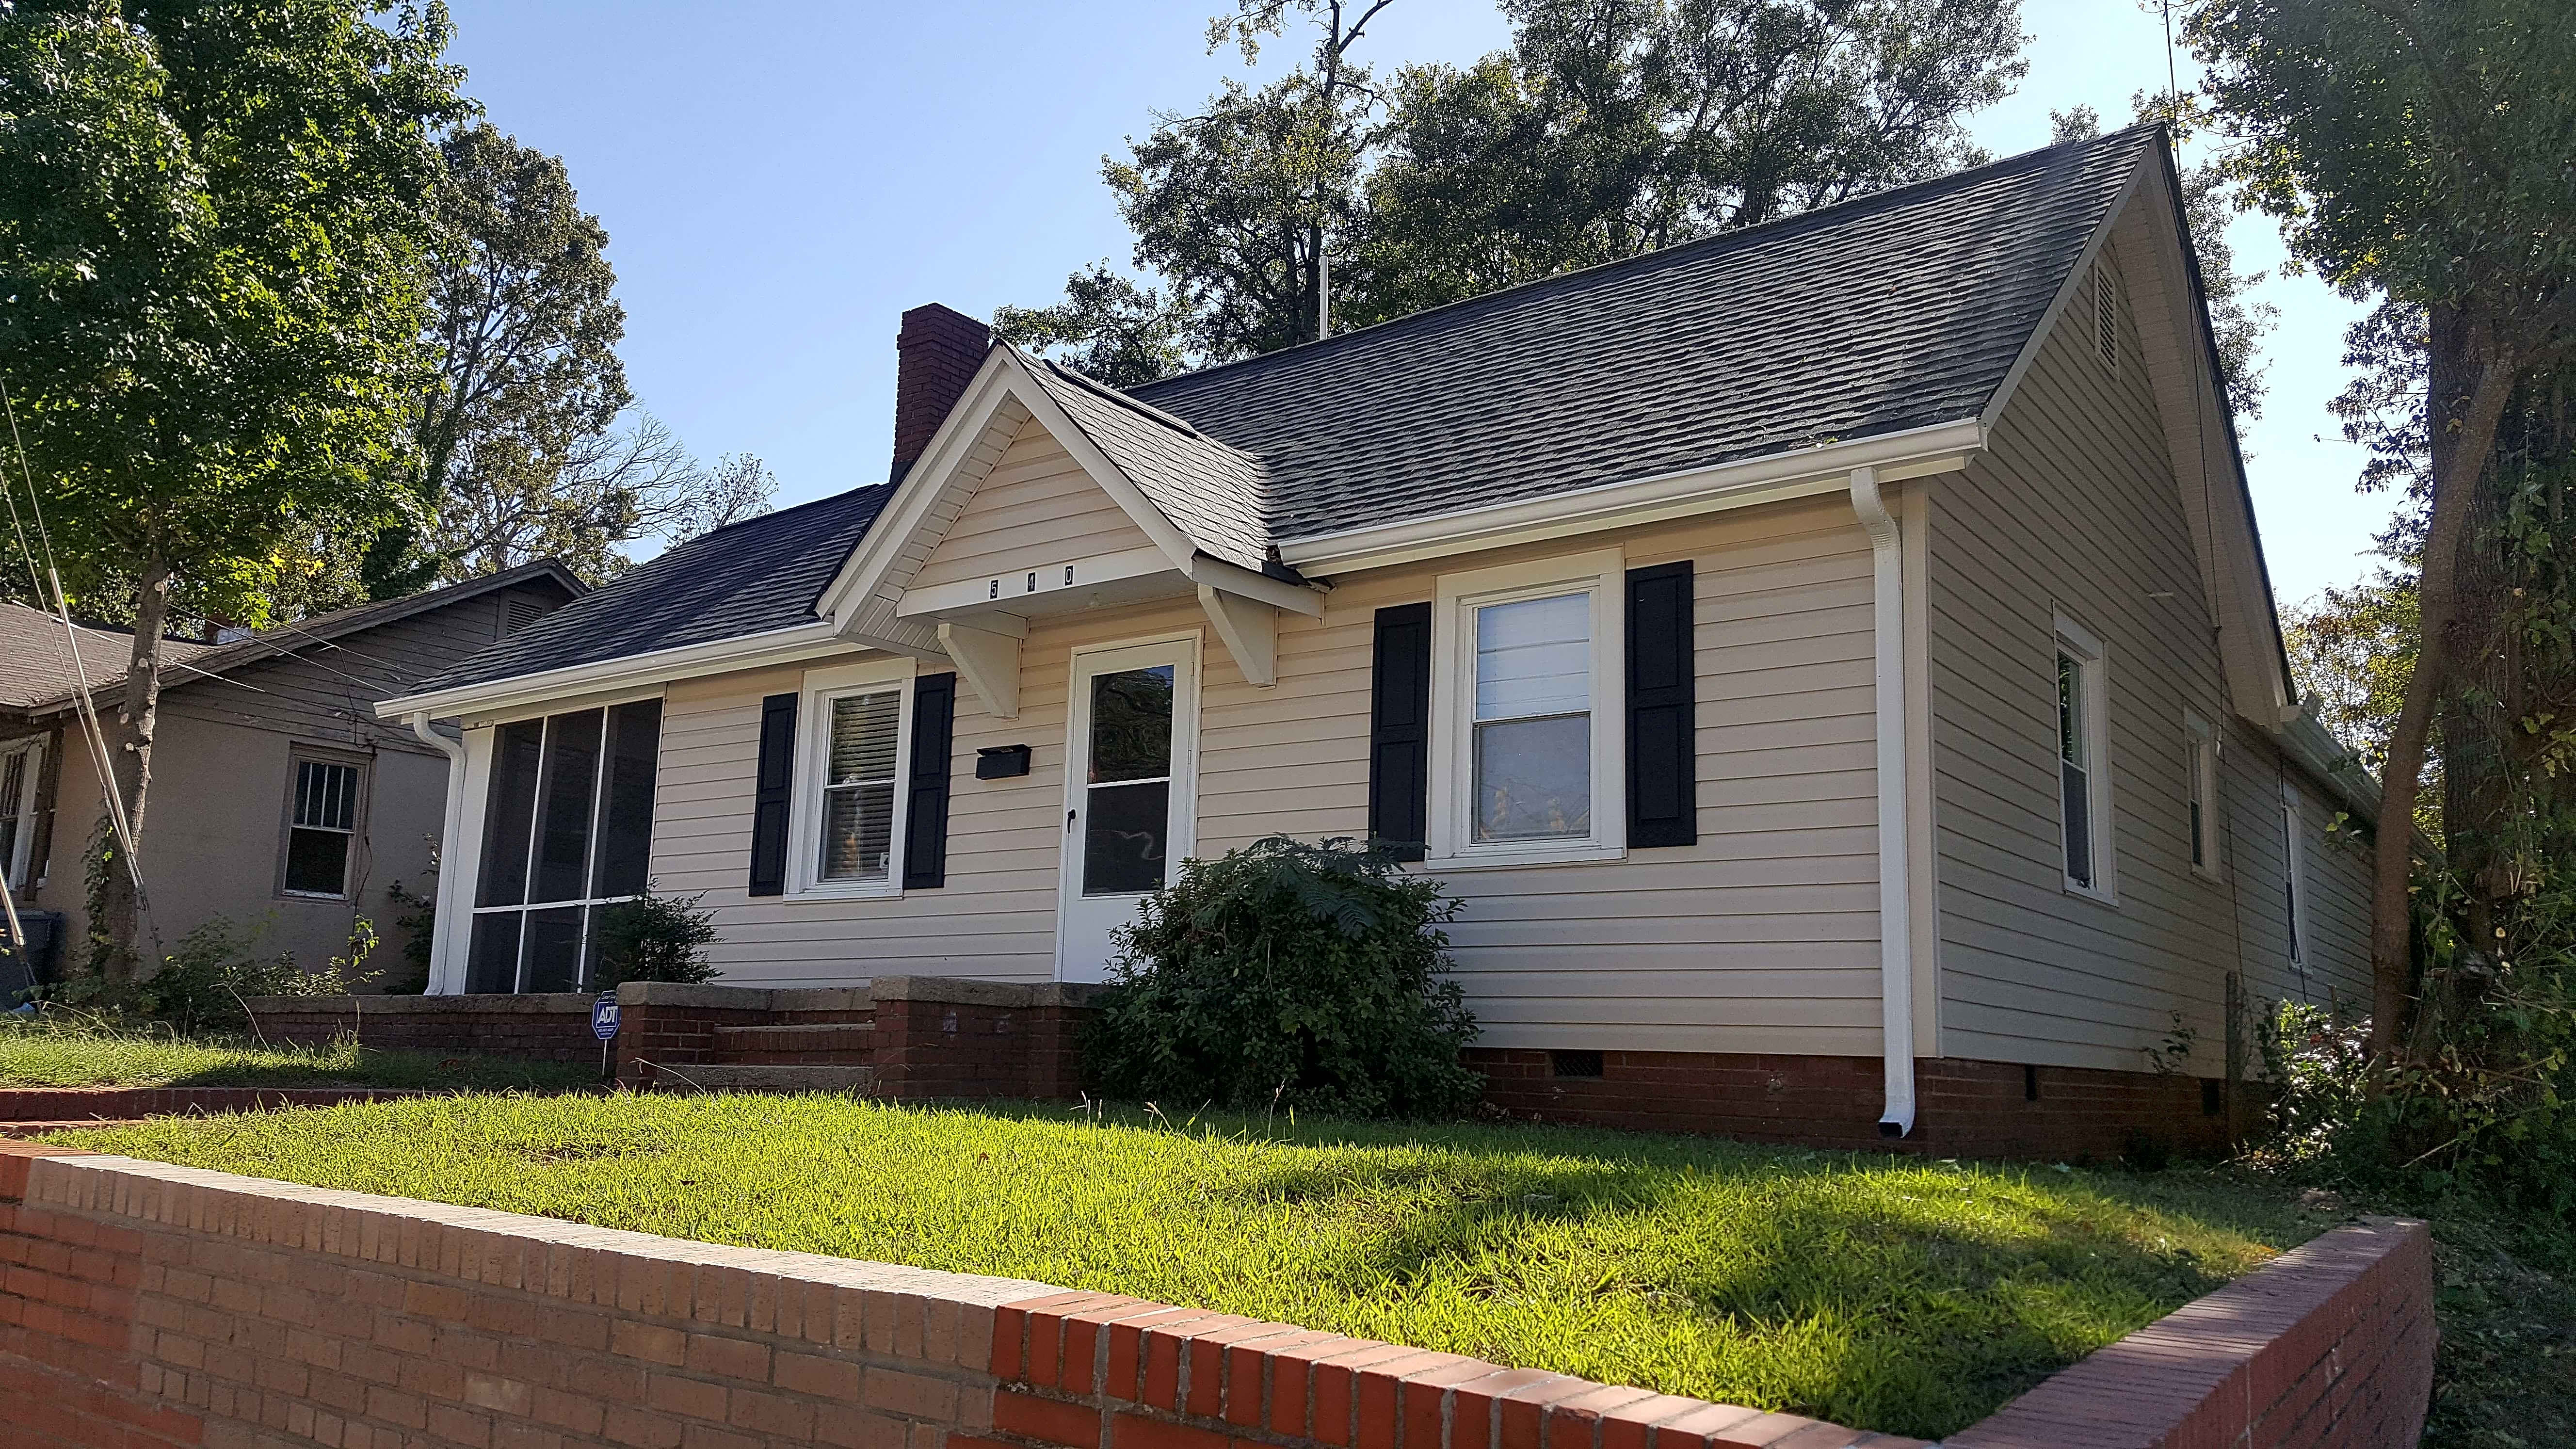 House for Rent in Spartanburg